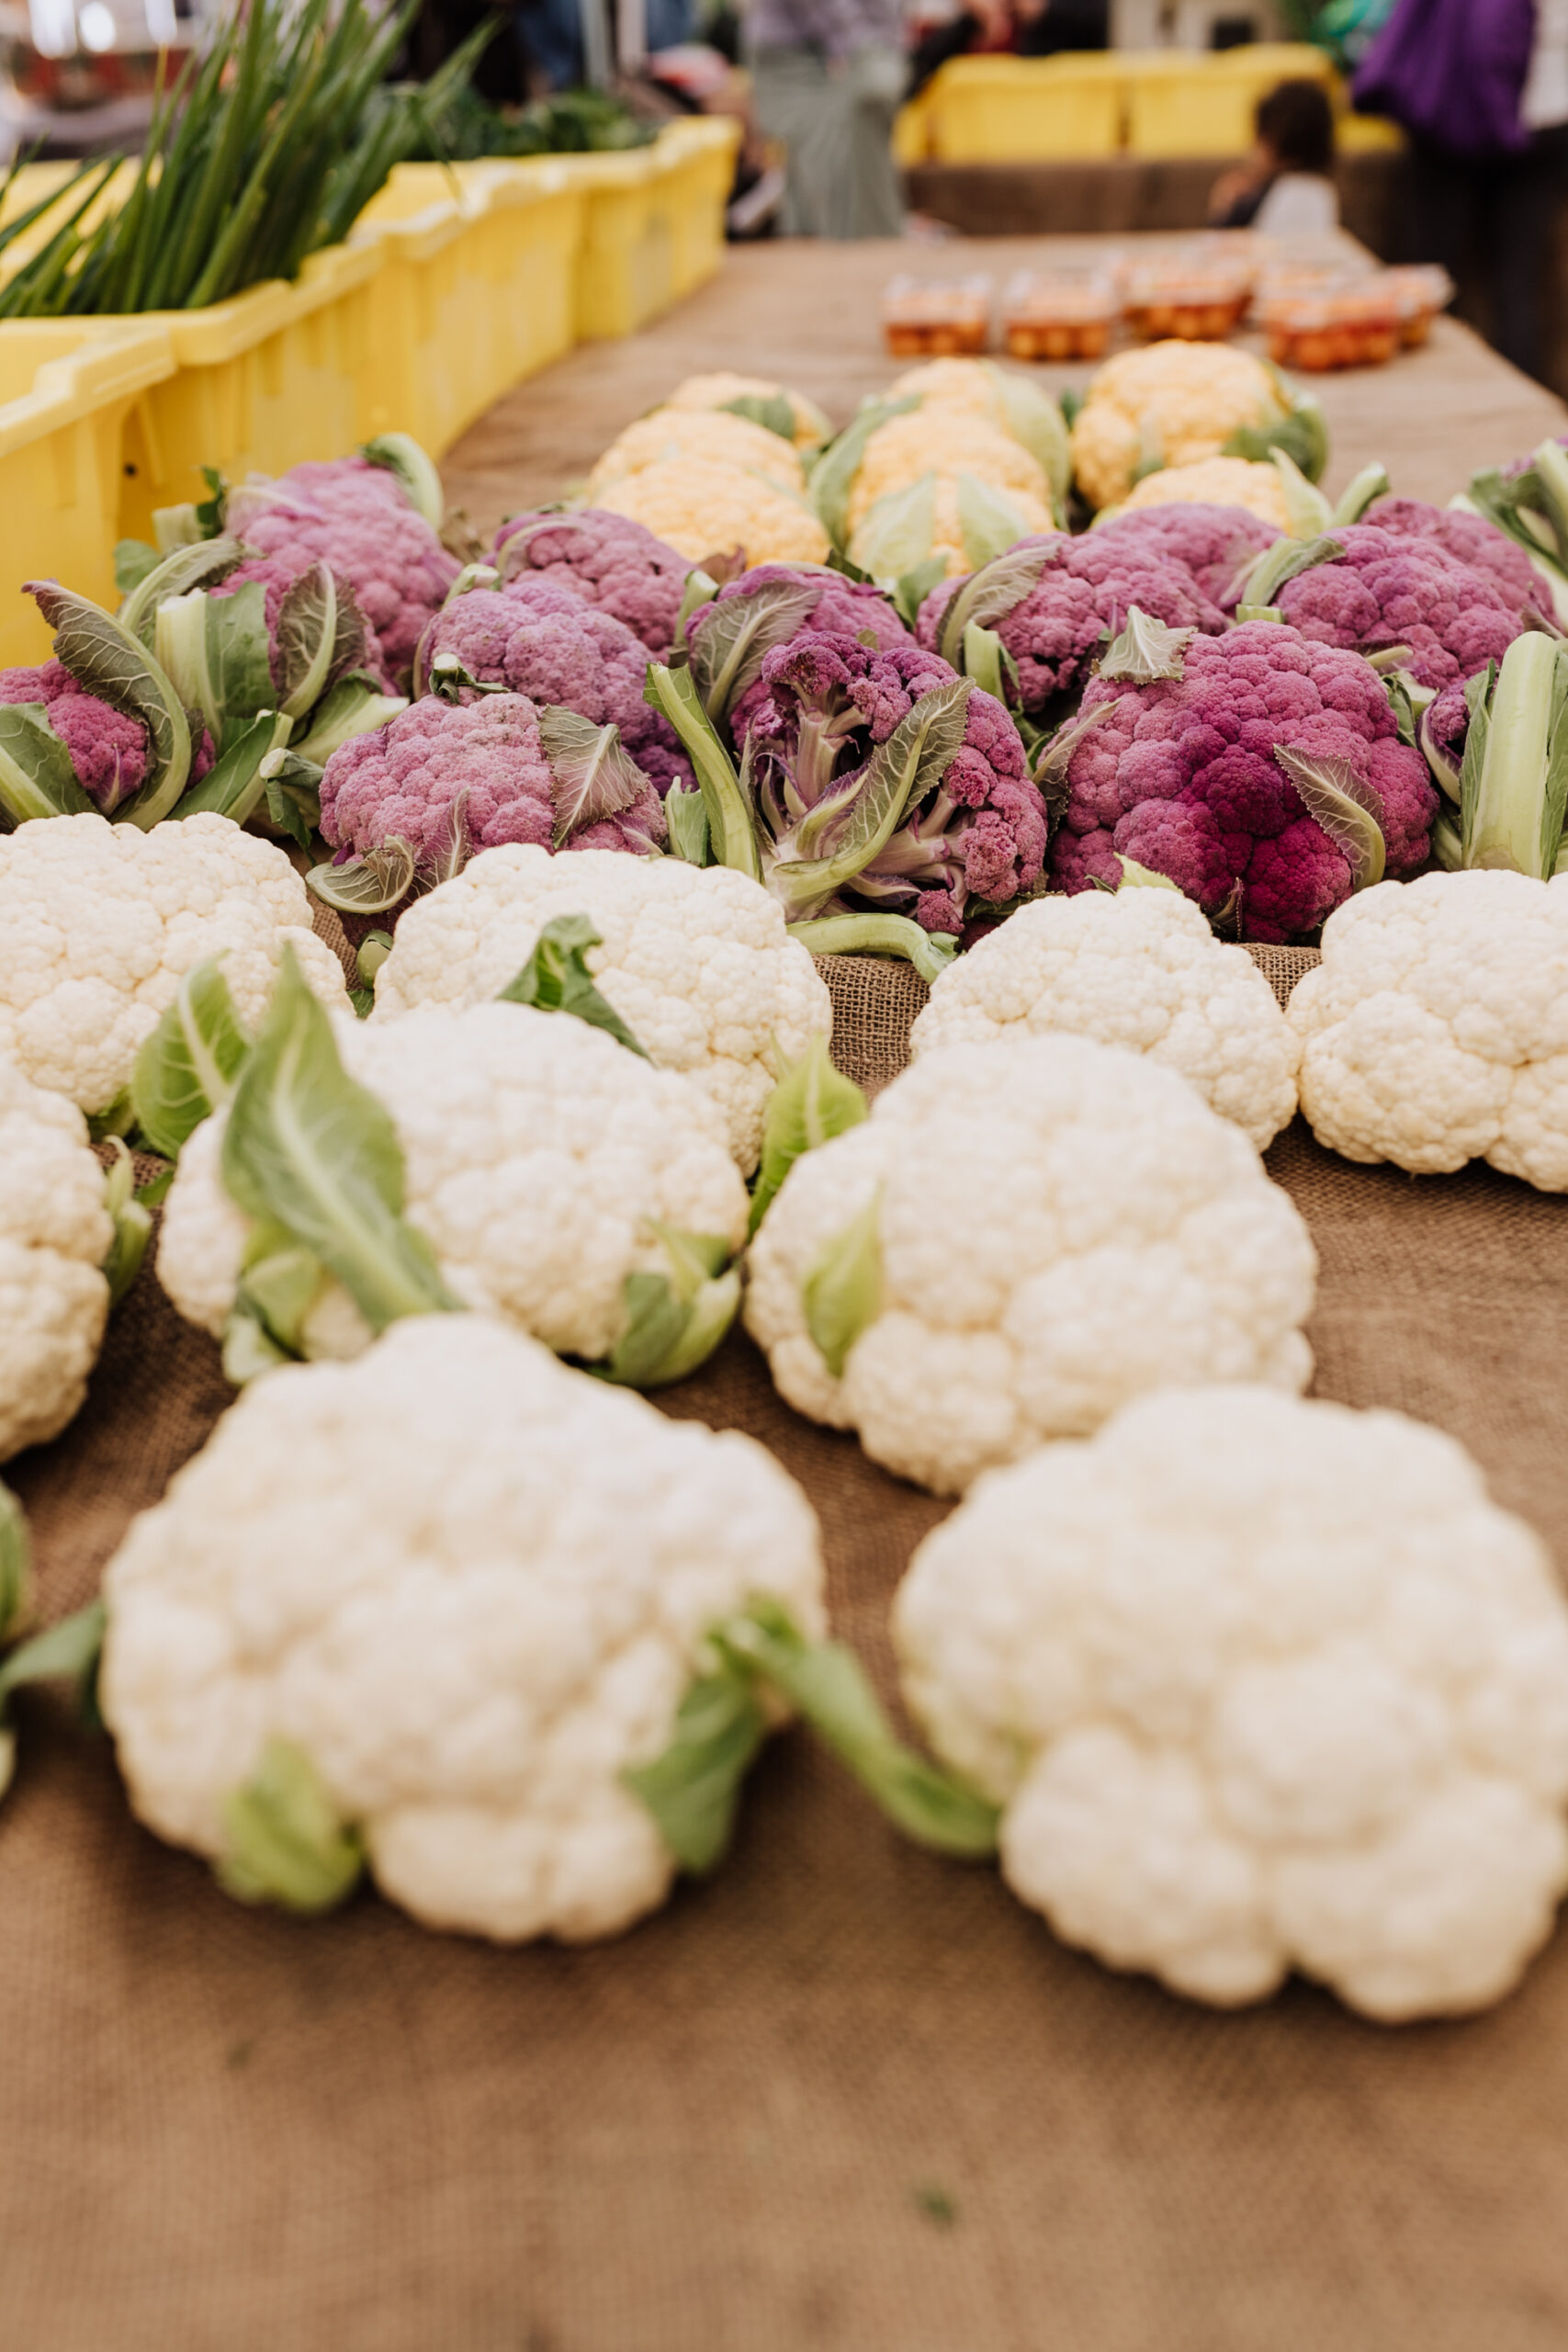 farmer's market fresh cauliflower in every color. #farmersmarket #healthyeating #vegetarian